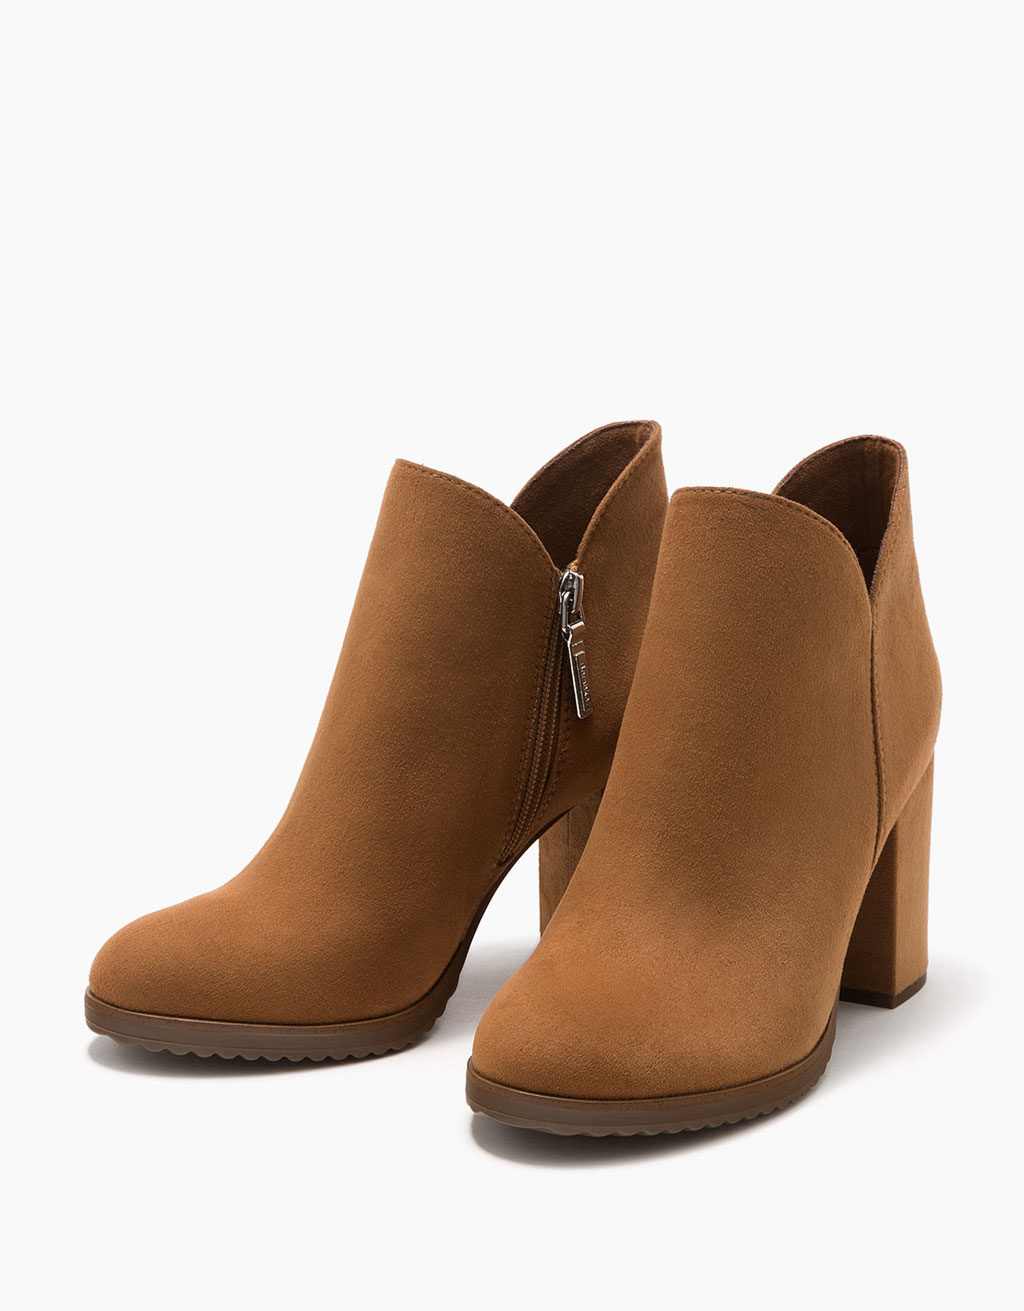 ankle boots with block mid-heel